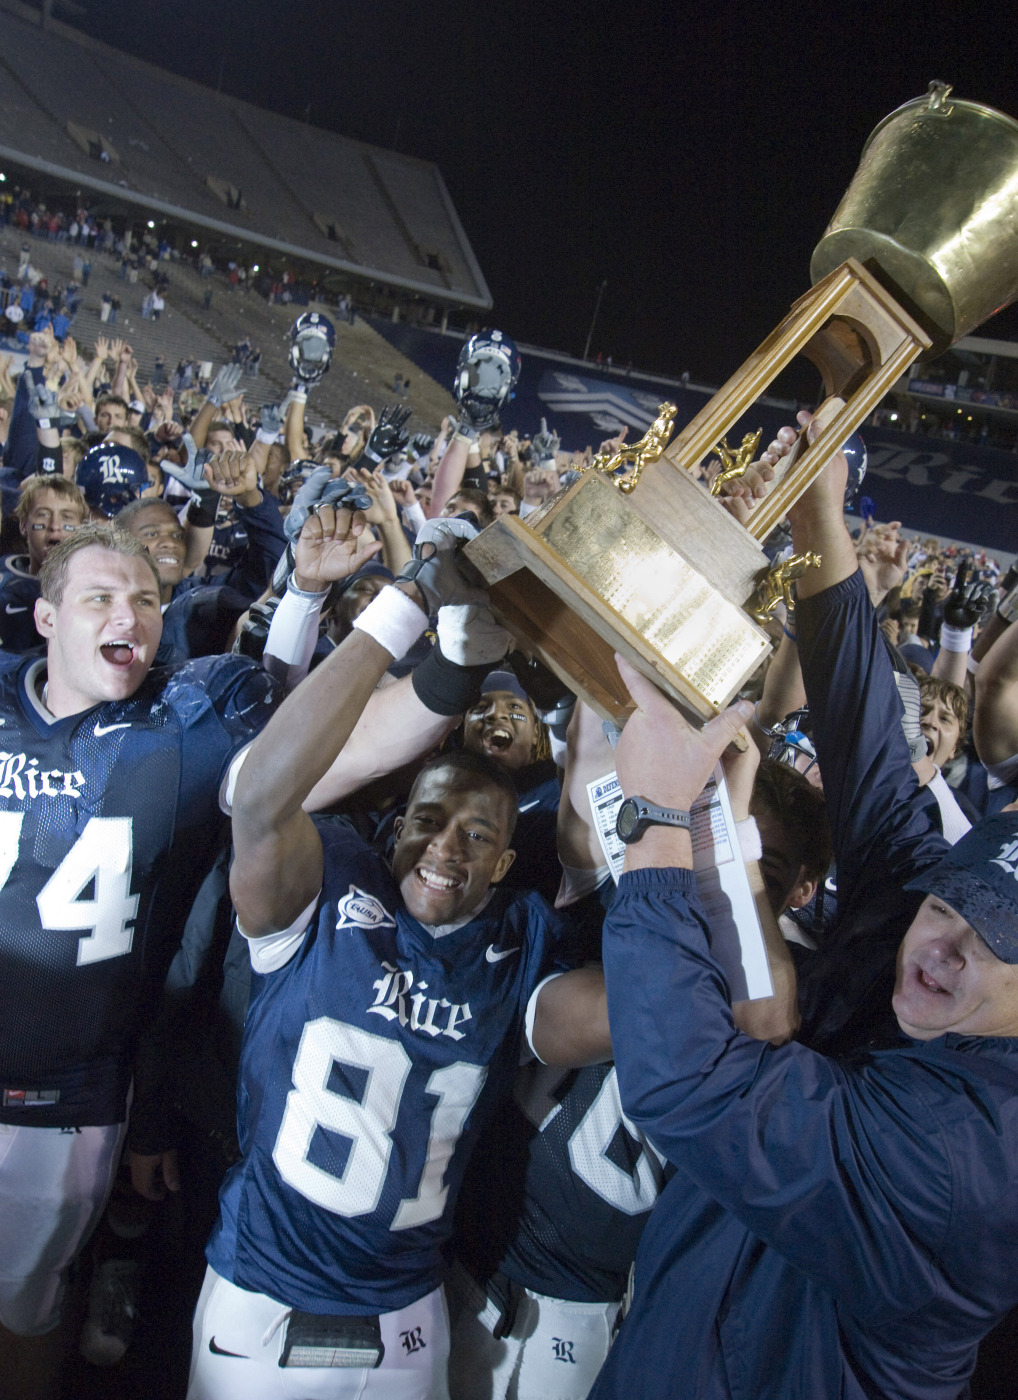 The Bayou Bucket will be decided at Rice Stadium on October 16.